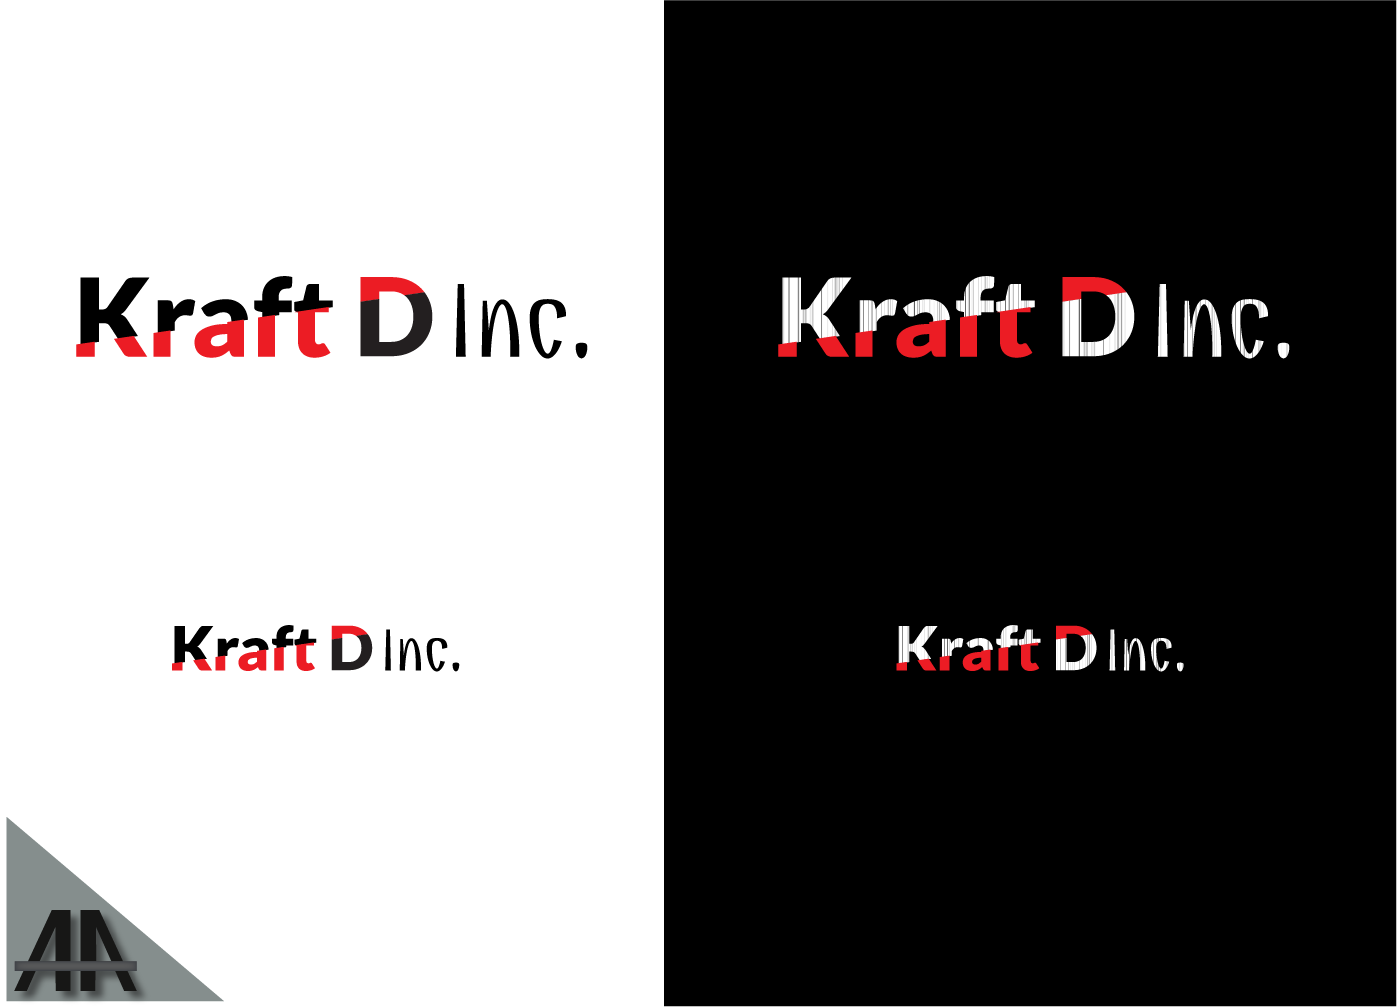 Logo Design by Thanasis Athanasopoulos - Entry No. 325 in the Logo Design Contest Unique Logo Design Wanted for Kraft D Inc.